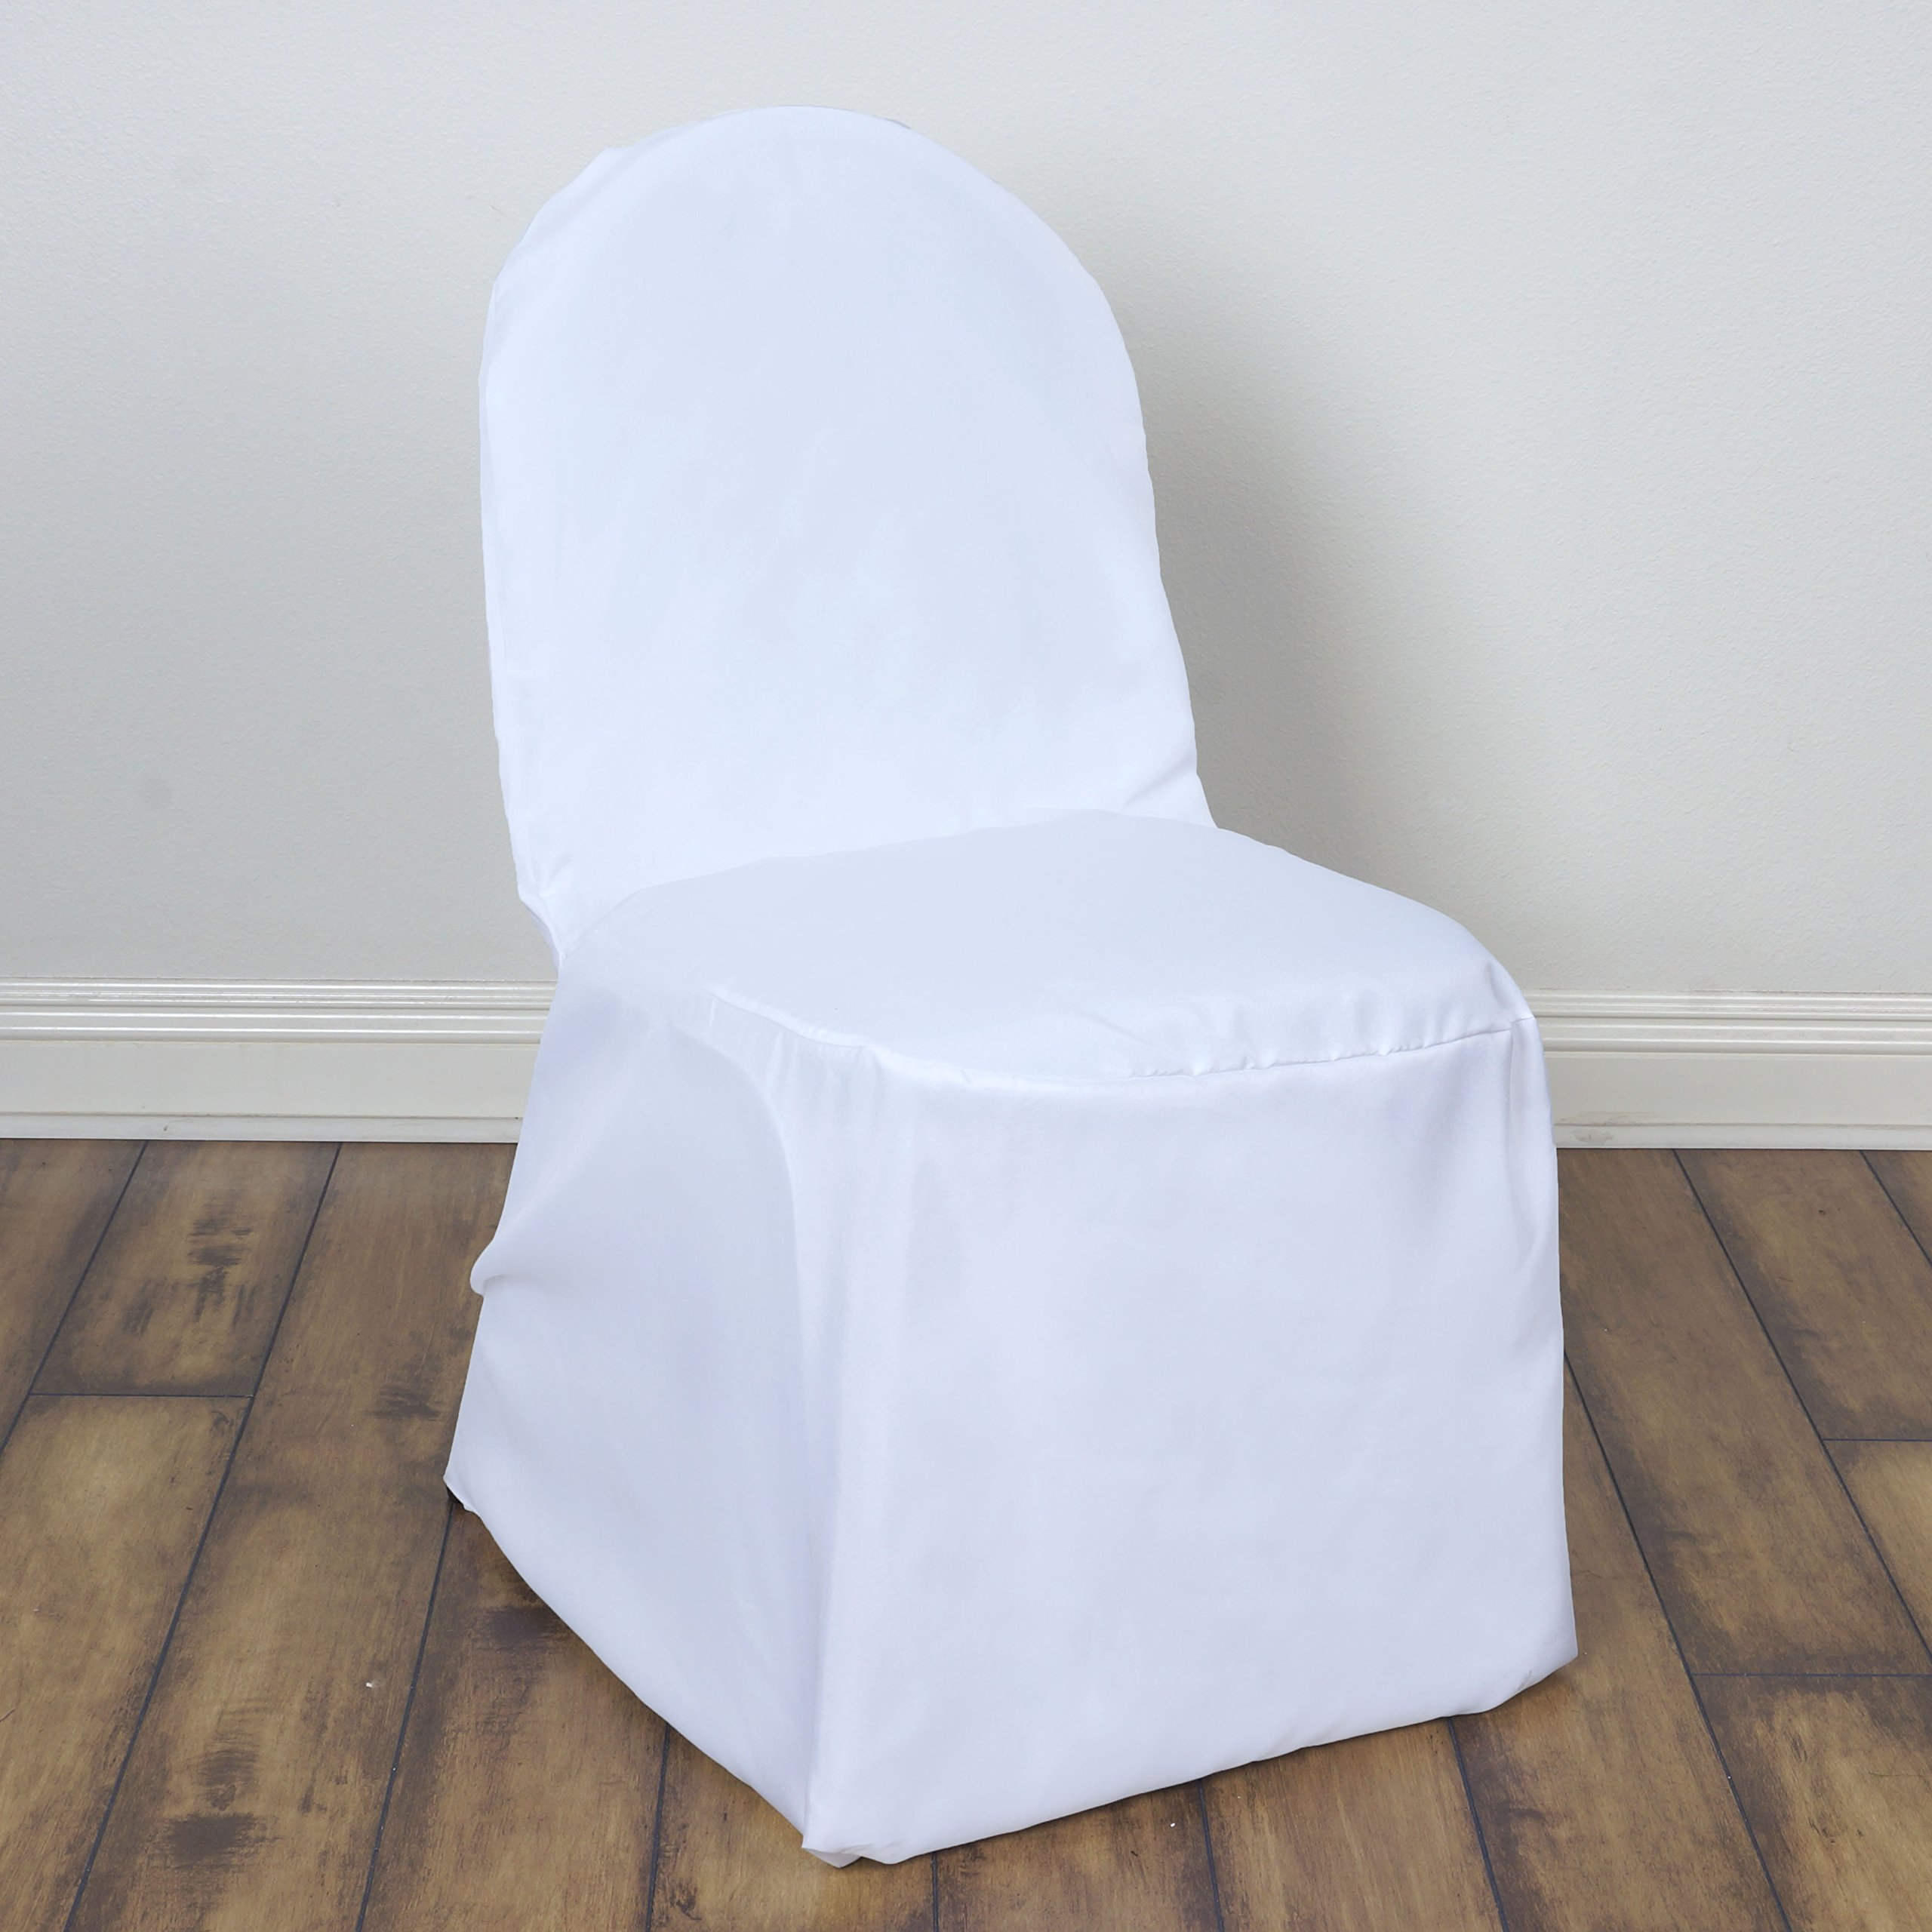 BalsaCircle 100 pcs White Polyester Banquet Chair Covers Slipcovers for Wedding Party Reception Decorations by BalsaCircle